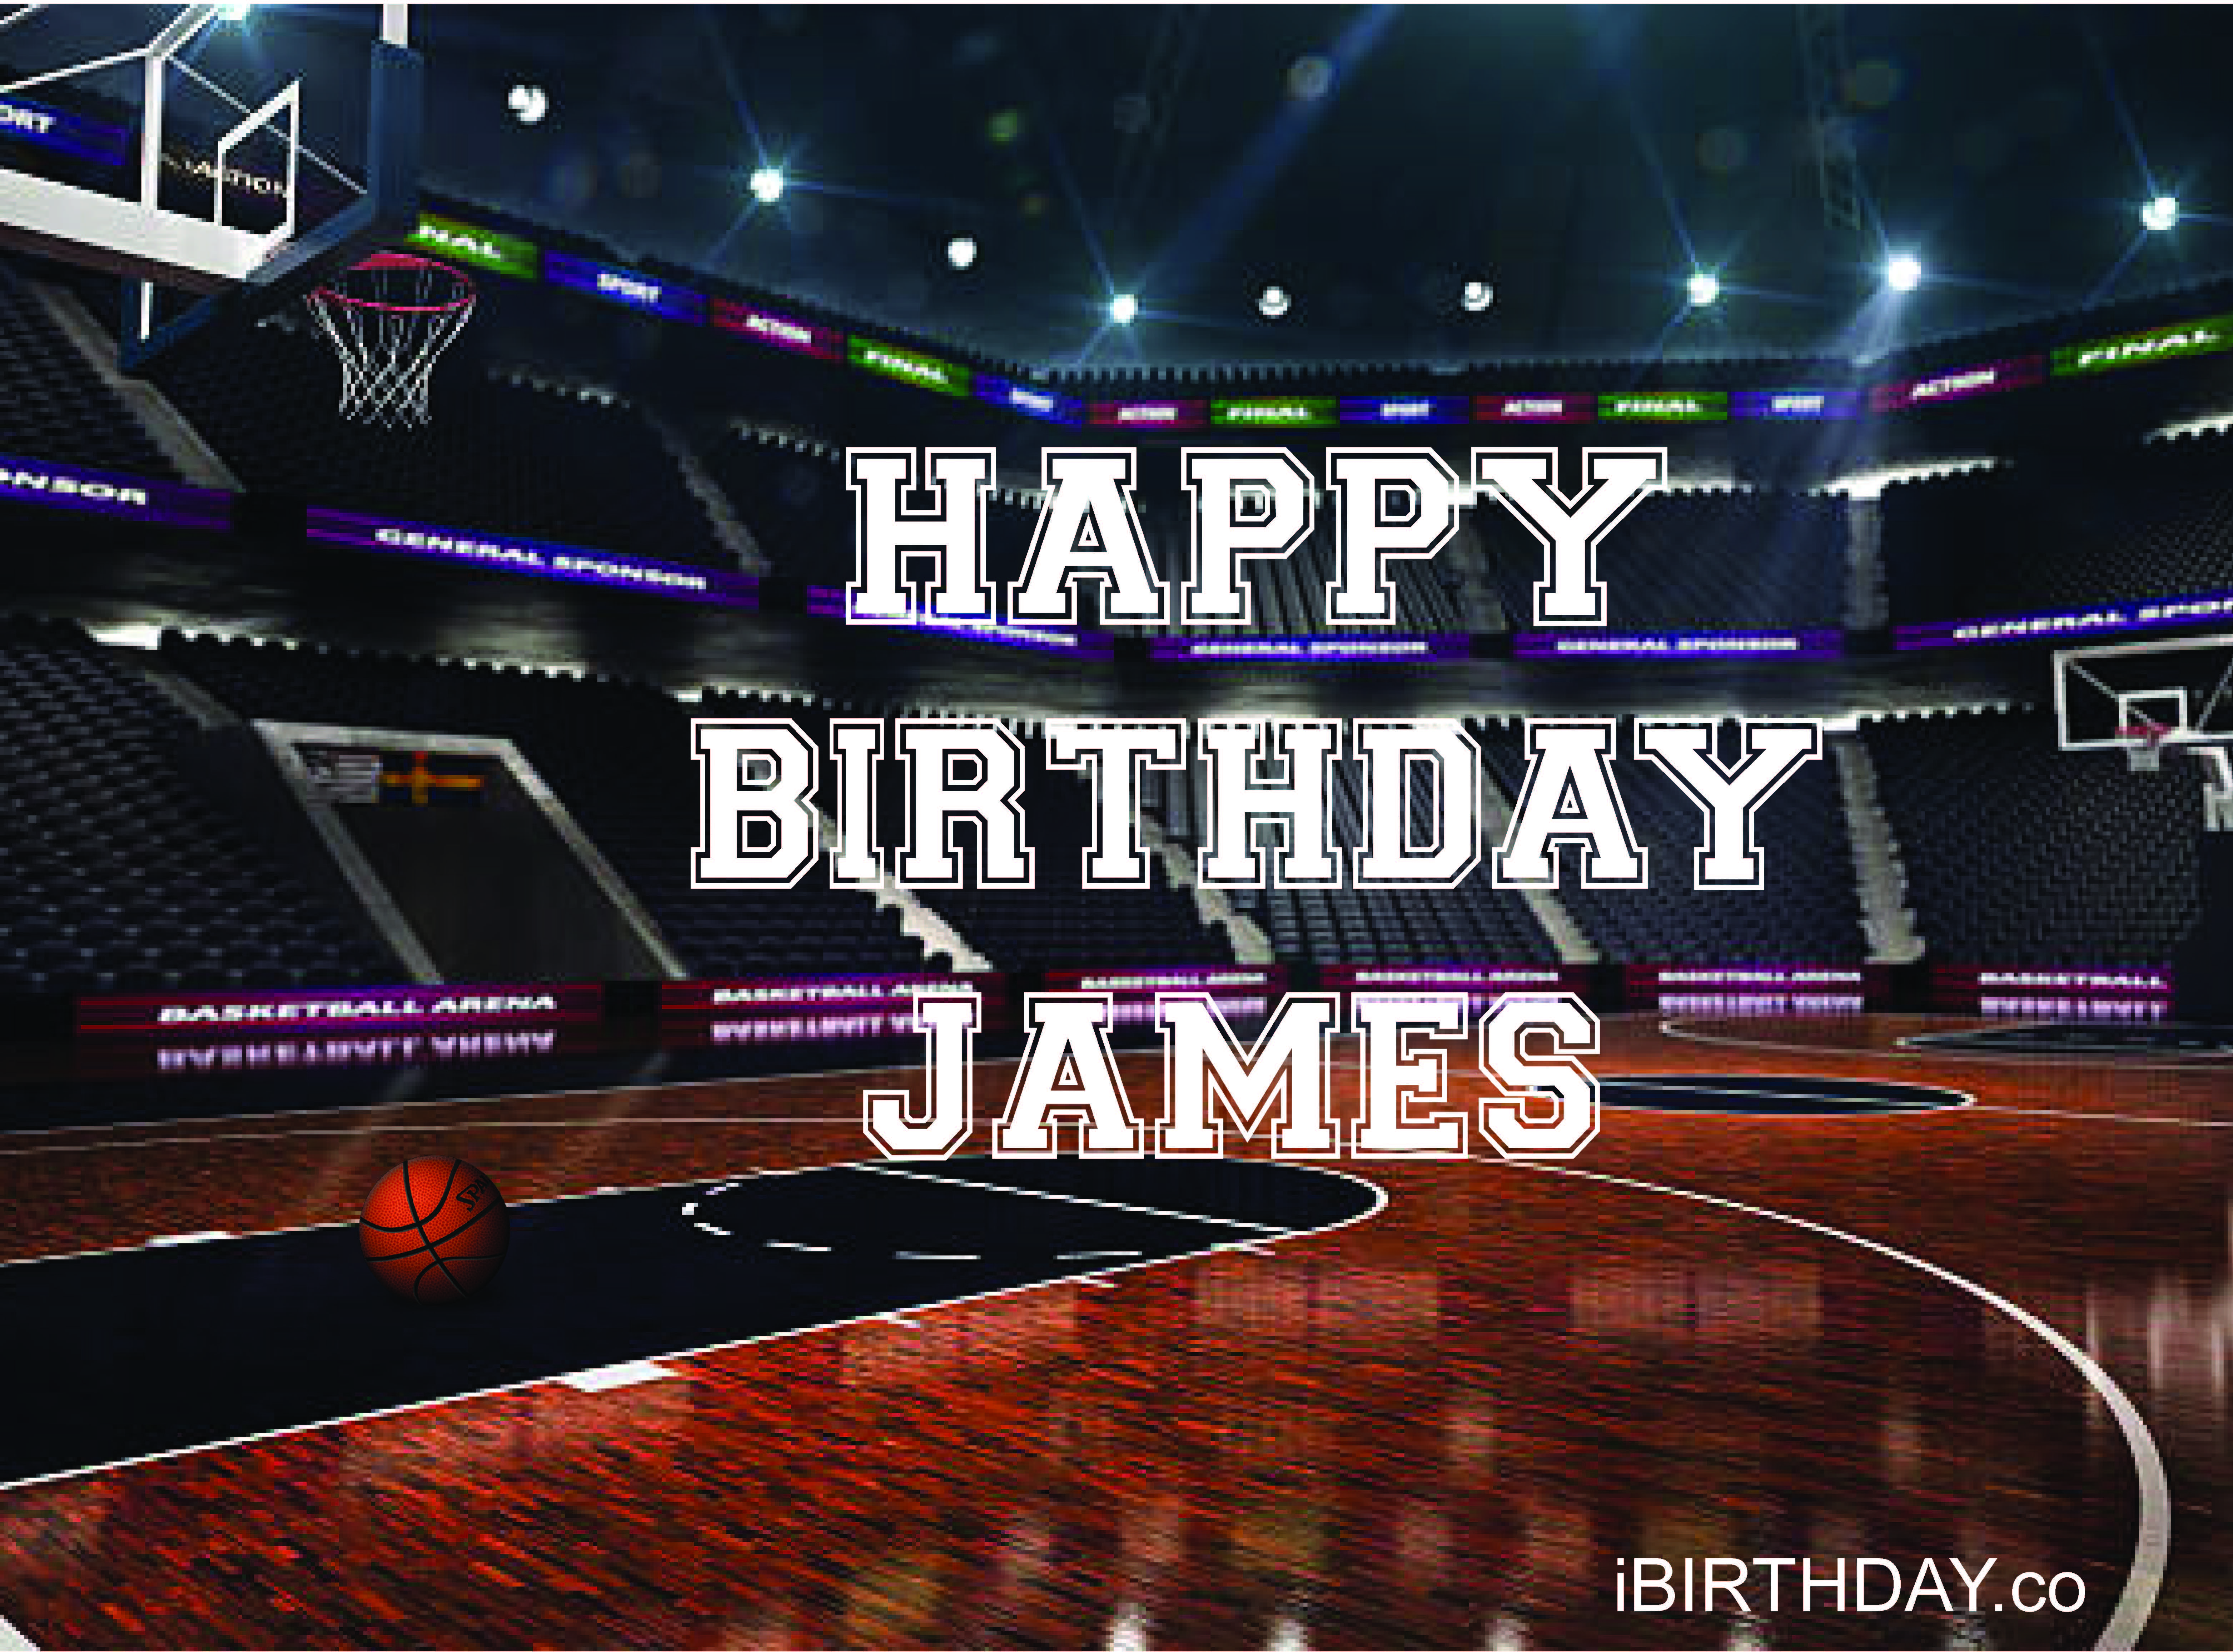 James Birthday Basketball Meme